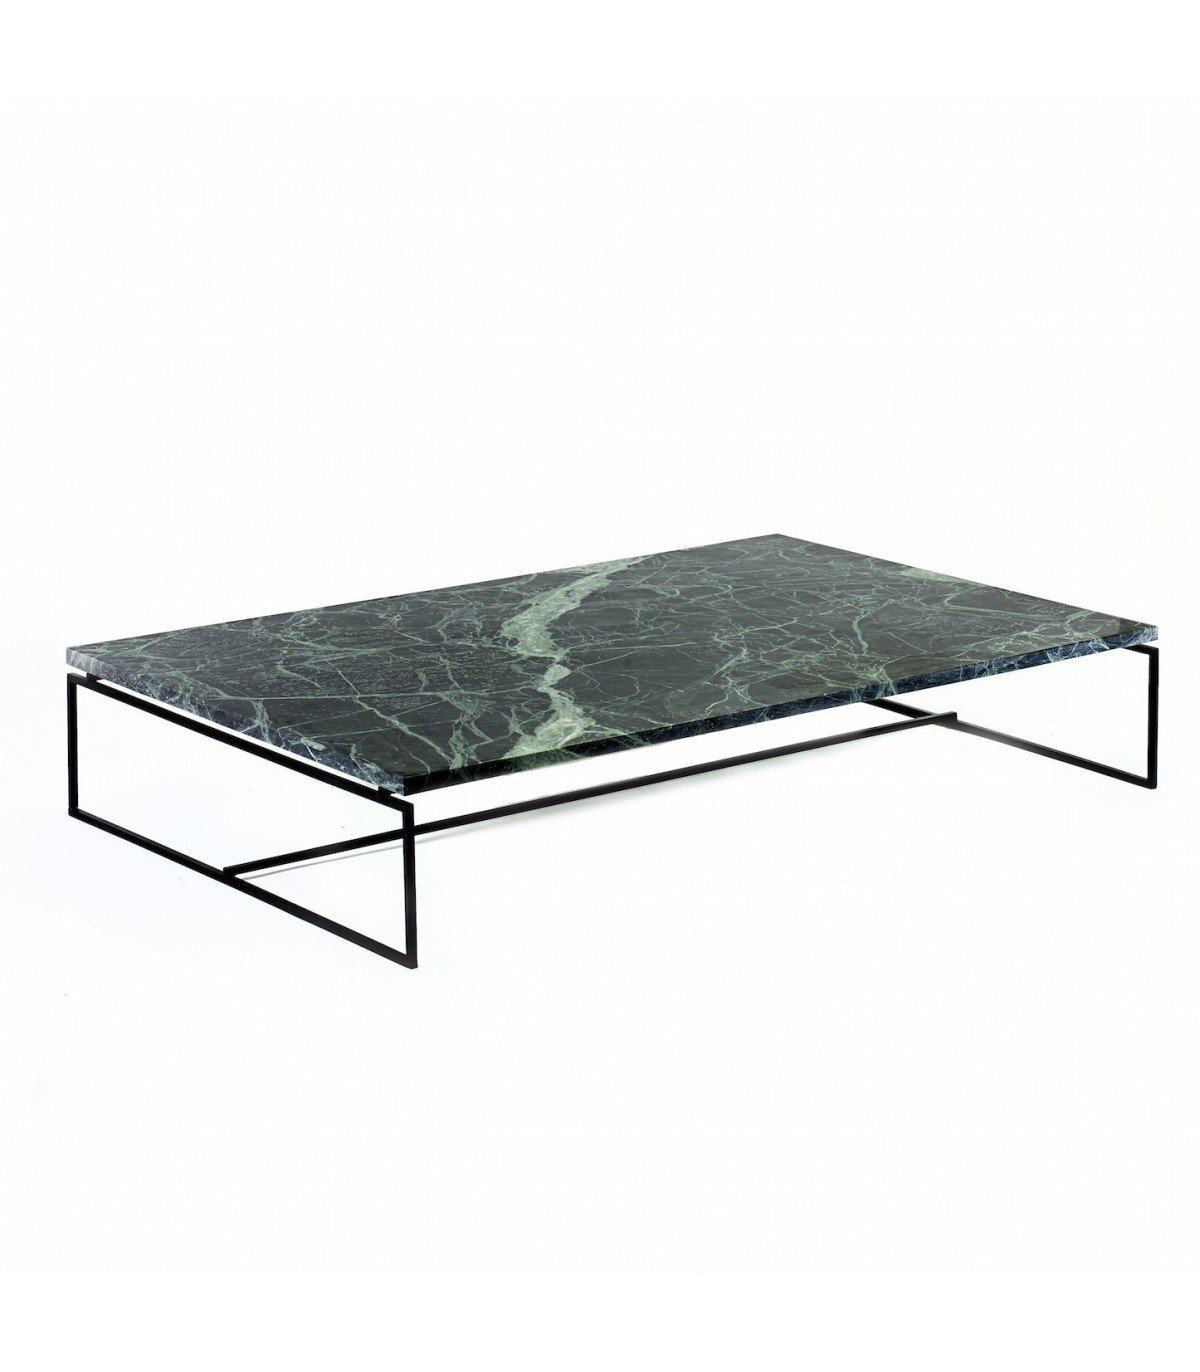 Table verde en marbre vert serax for Table basse marbre